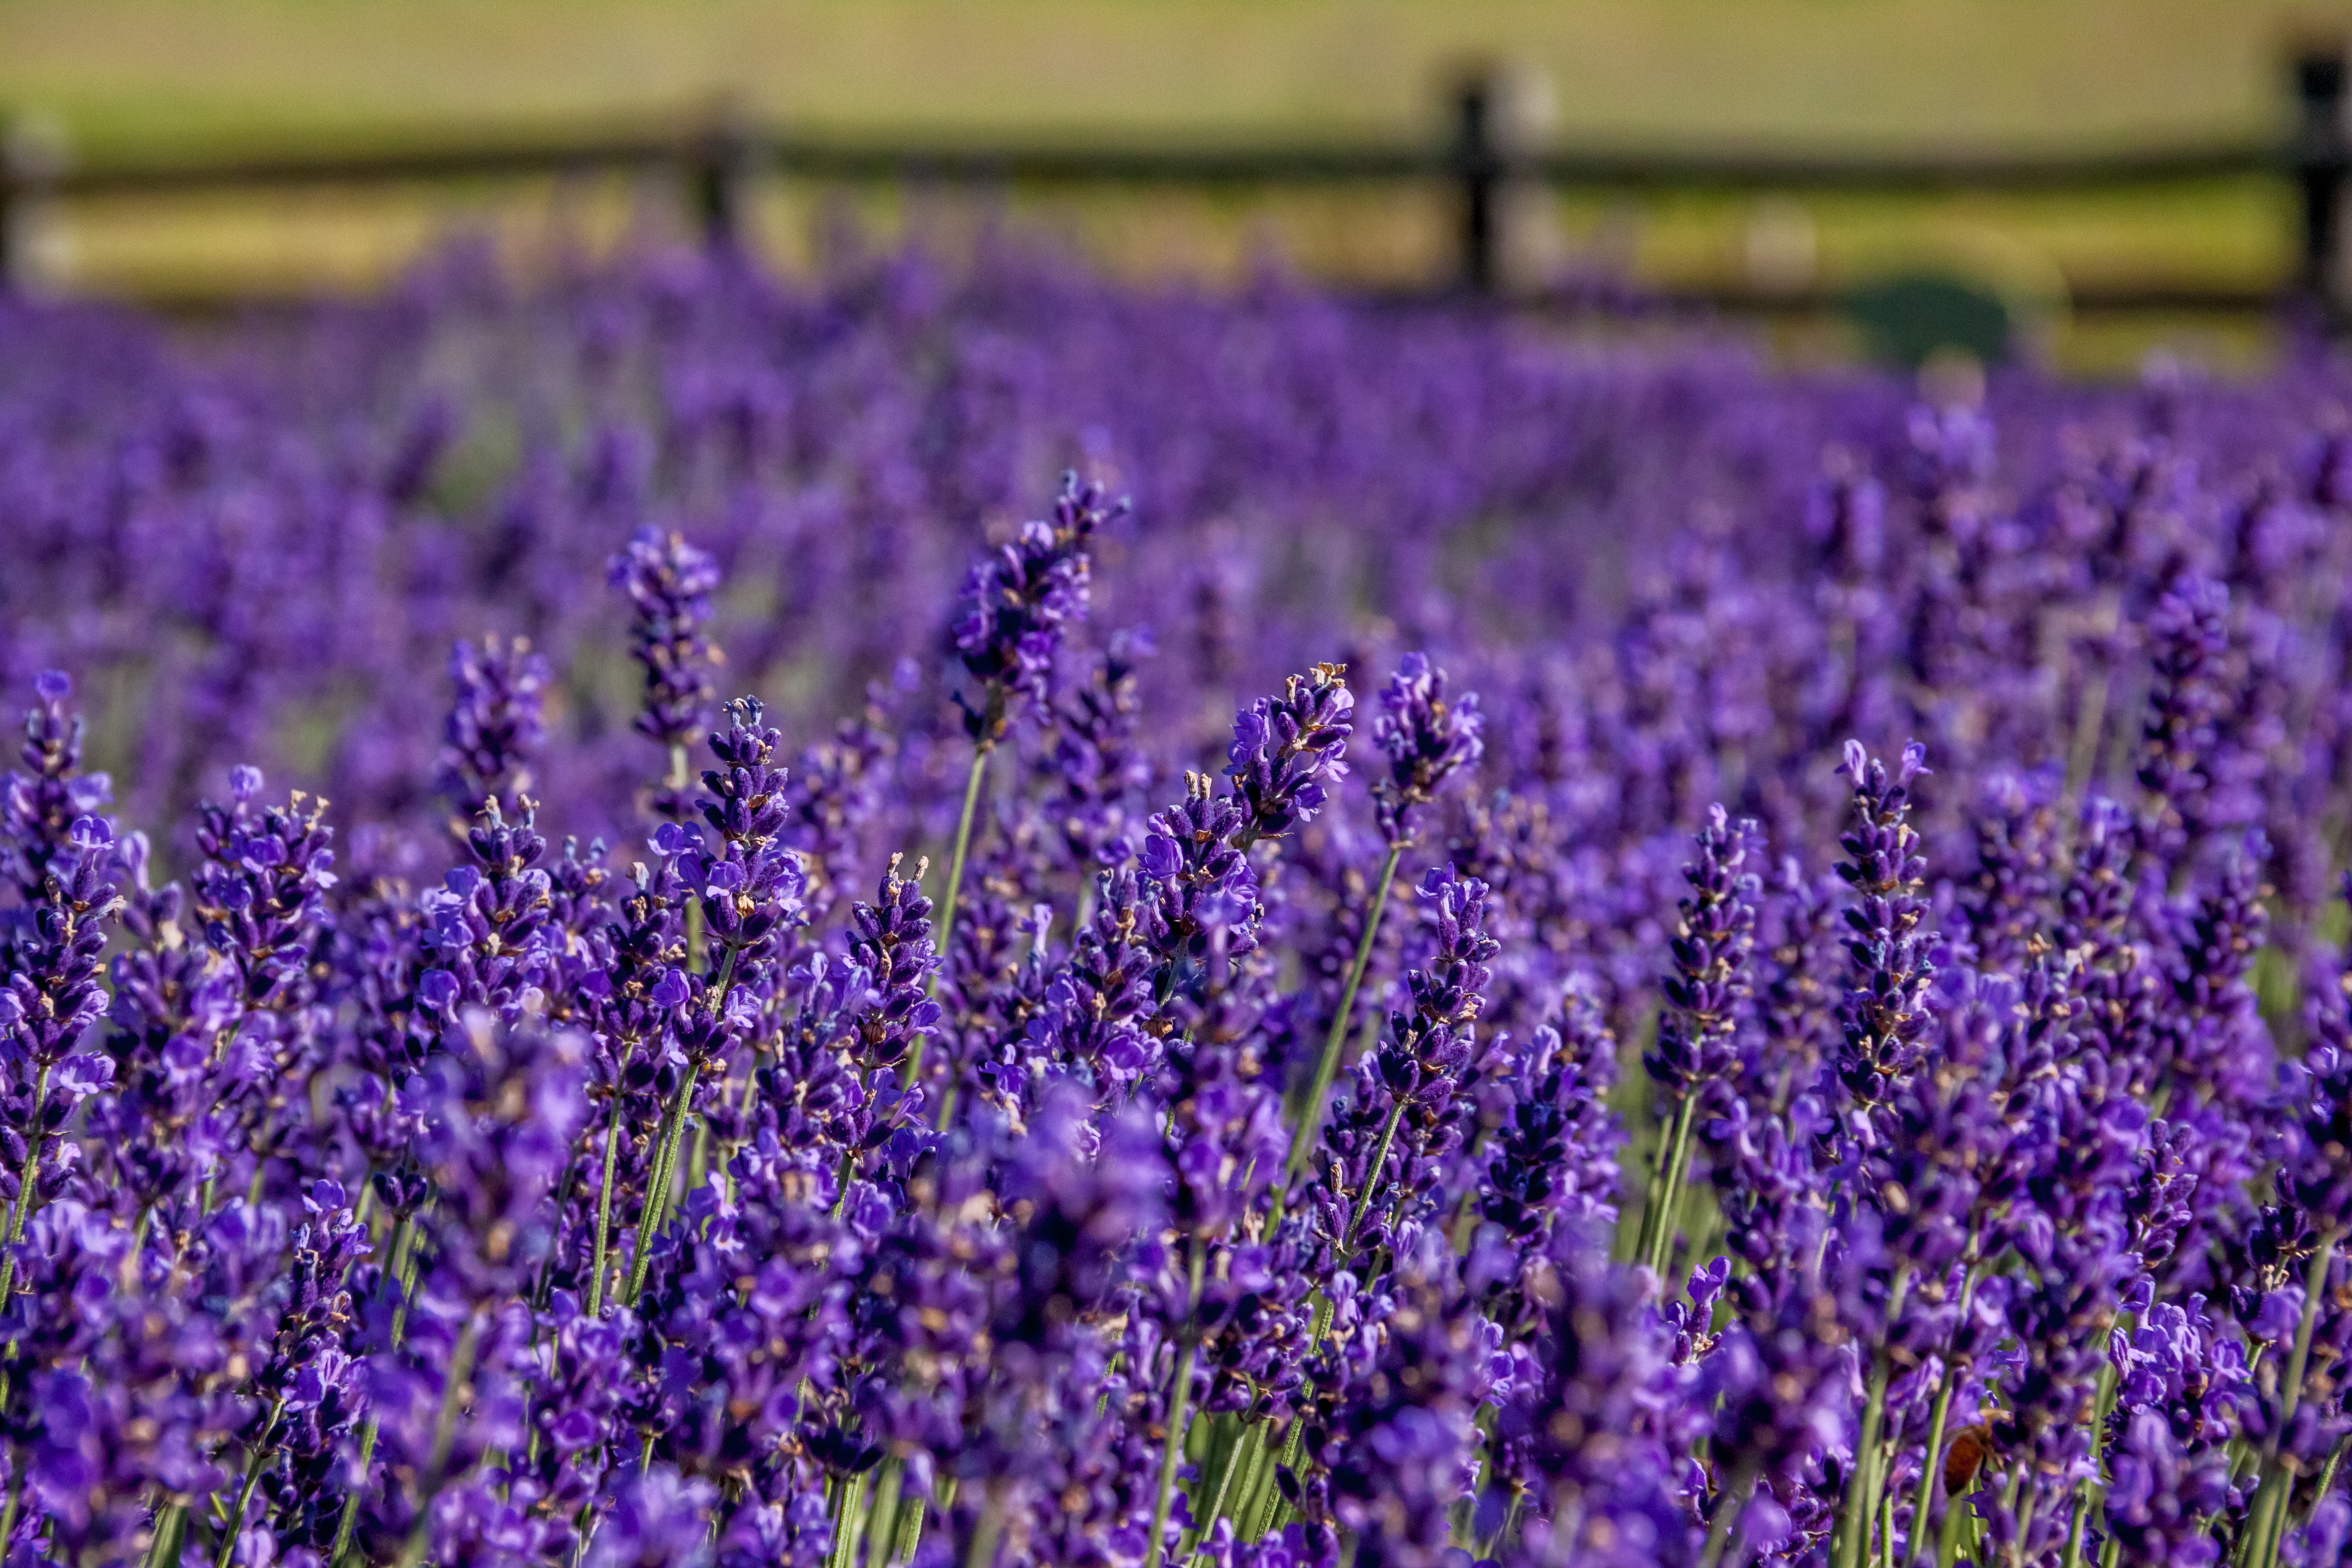 Minivan Adventures Article- A Visit to Lavender Hill Farm